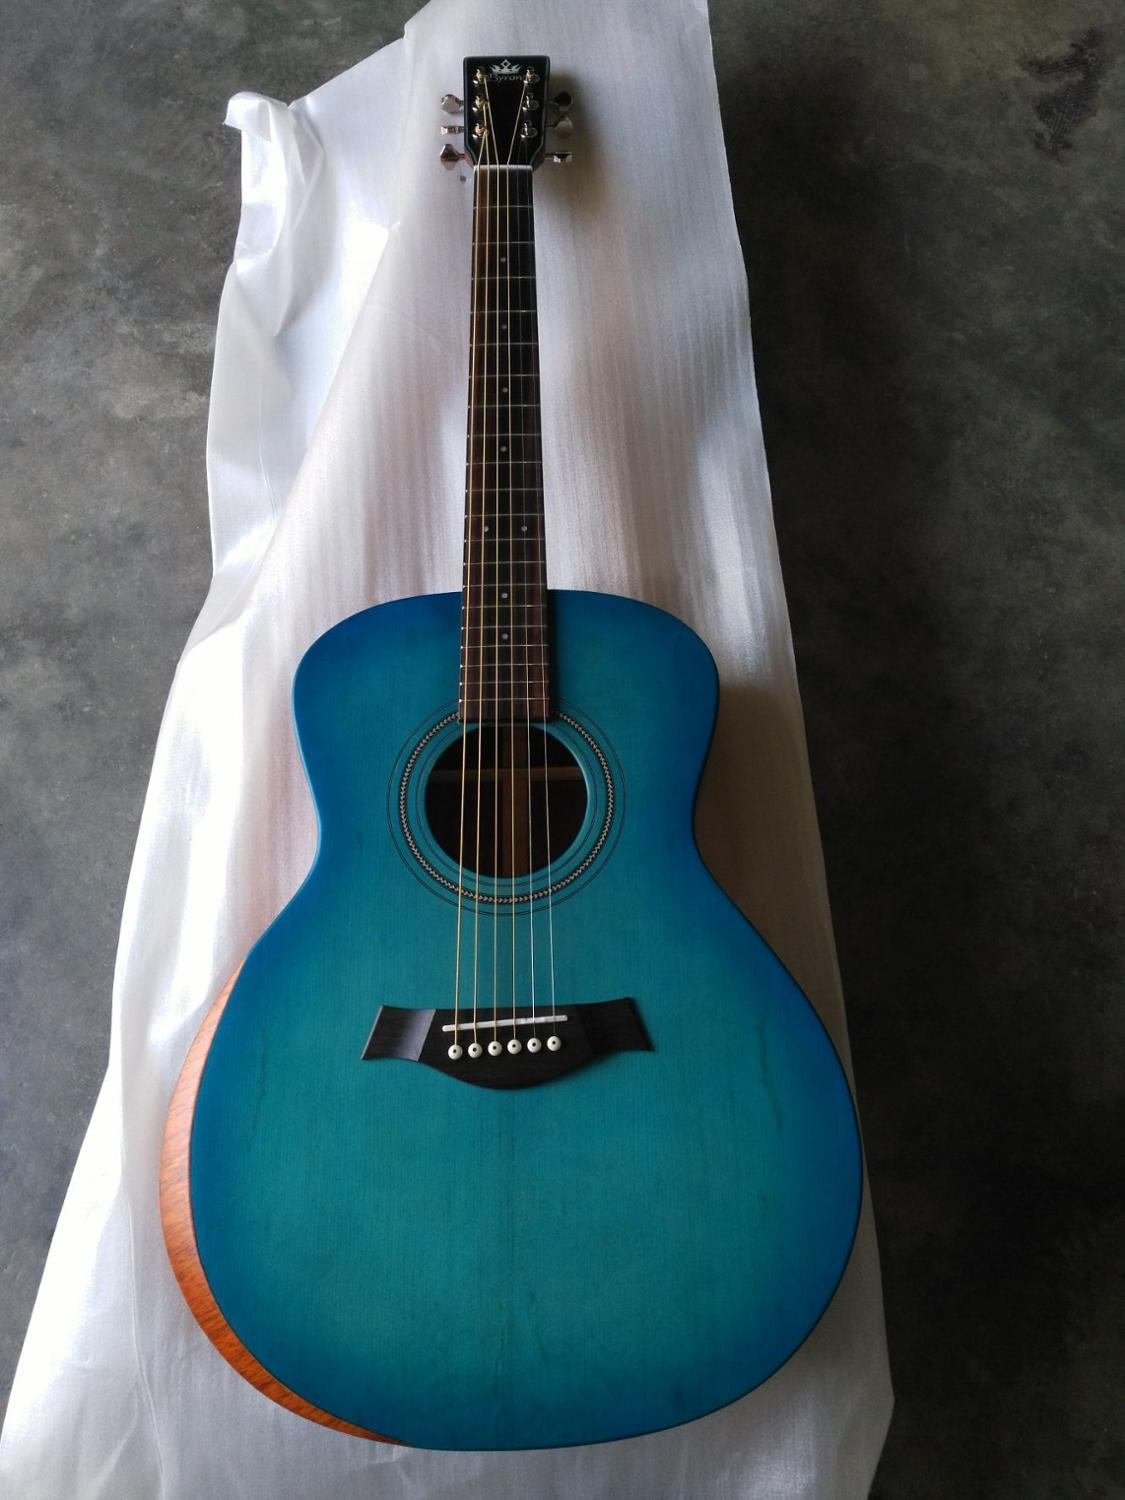 free shipping grand concert solid spruce blue burst ooo body satin finishing acoustic guitar. Black Bedroom Furniture Sets. Home Design Ideas